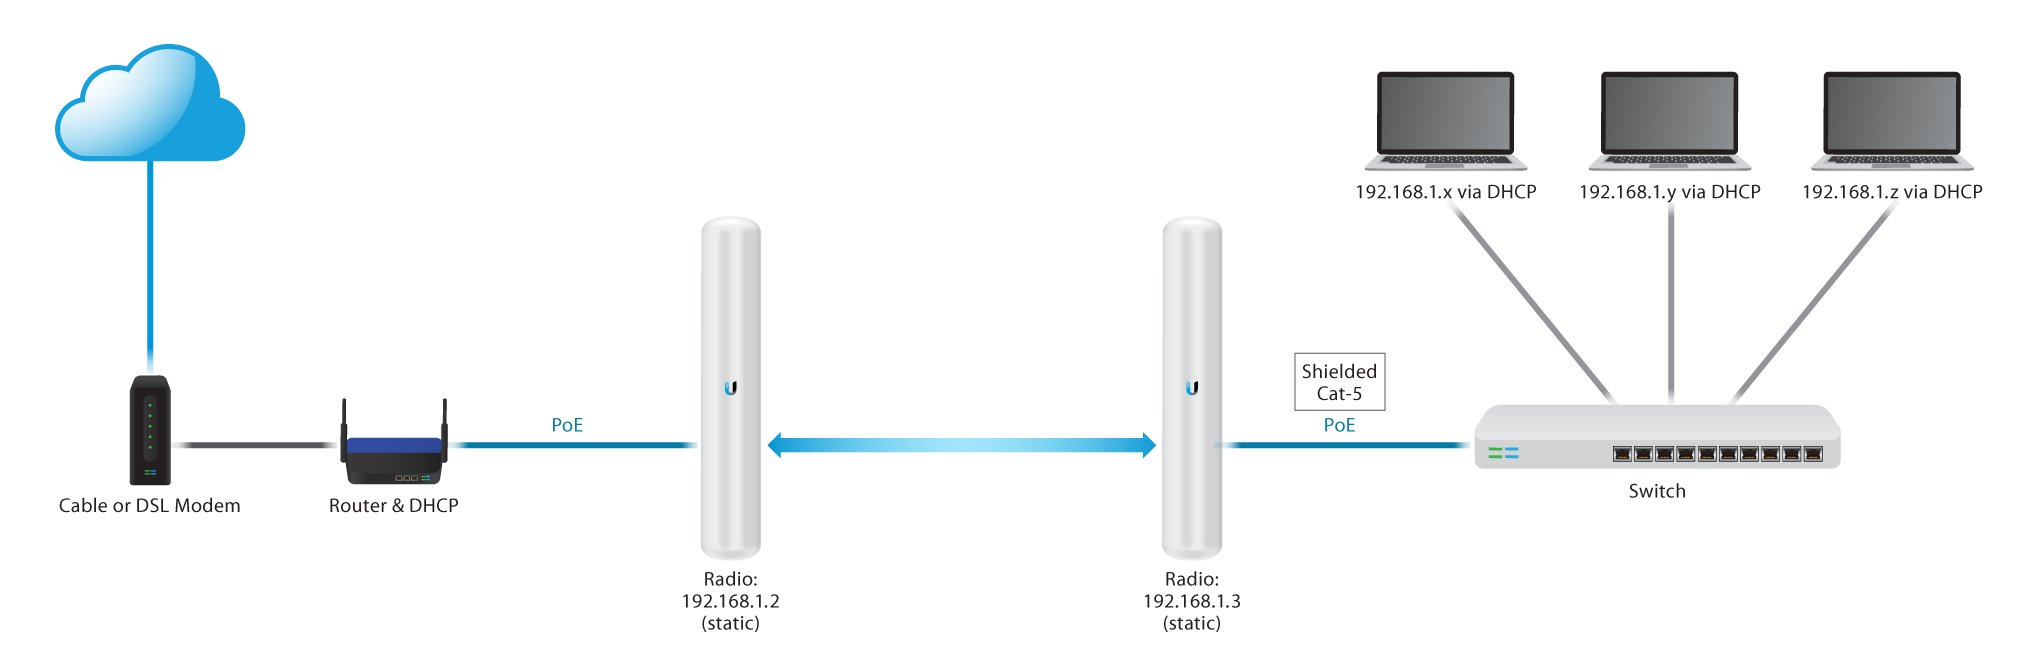 airMAX - How to Configure a Point-to-Point Link (Layer 2, Transparent  Bridge) – Ubiquiti Support and Help Center | Nanostation M2 Wiring Diagram |  | Ubiquiti Support and Help Center